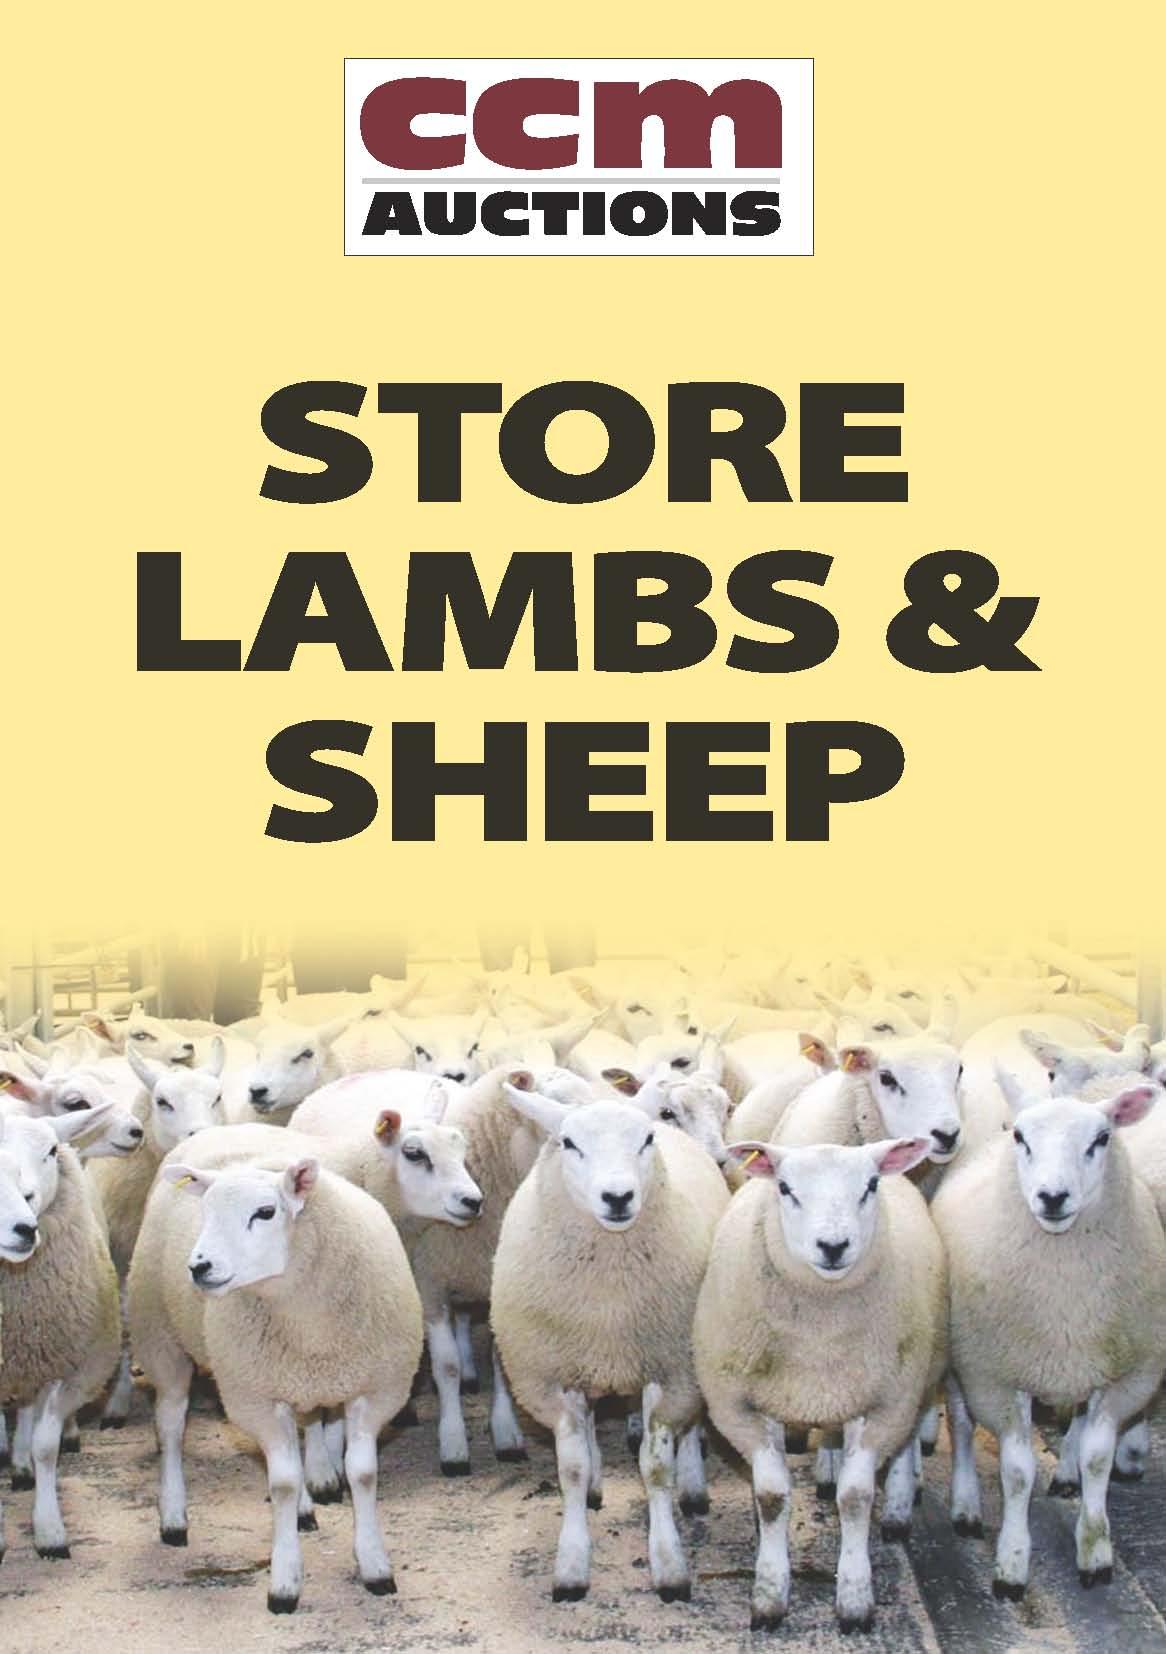 STORE LAMBS - WEDNESDAY 26TH NOVEMBER 2014